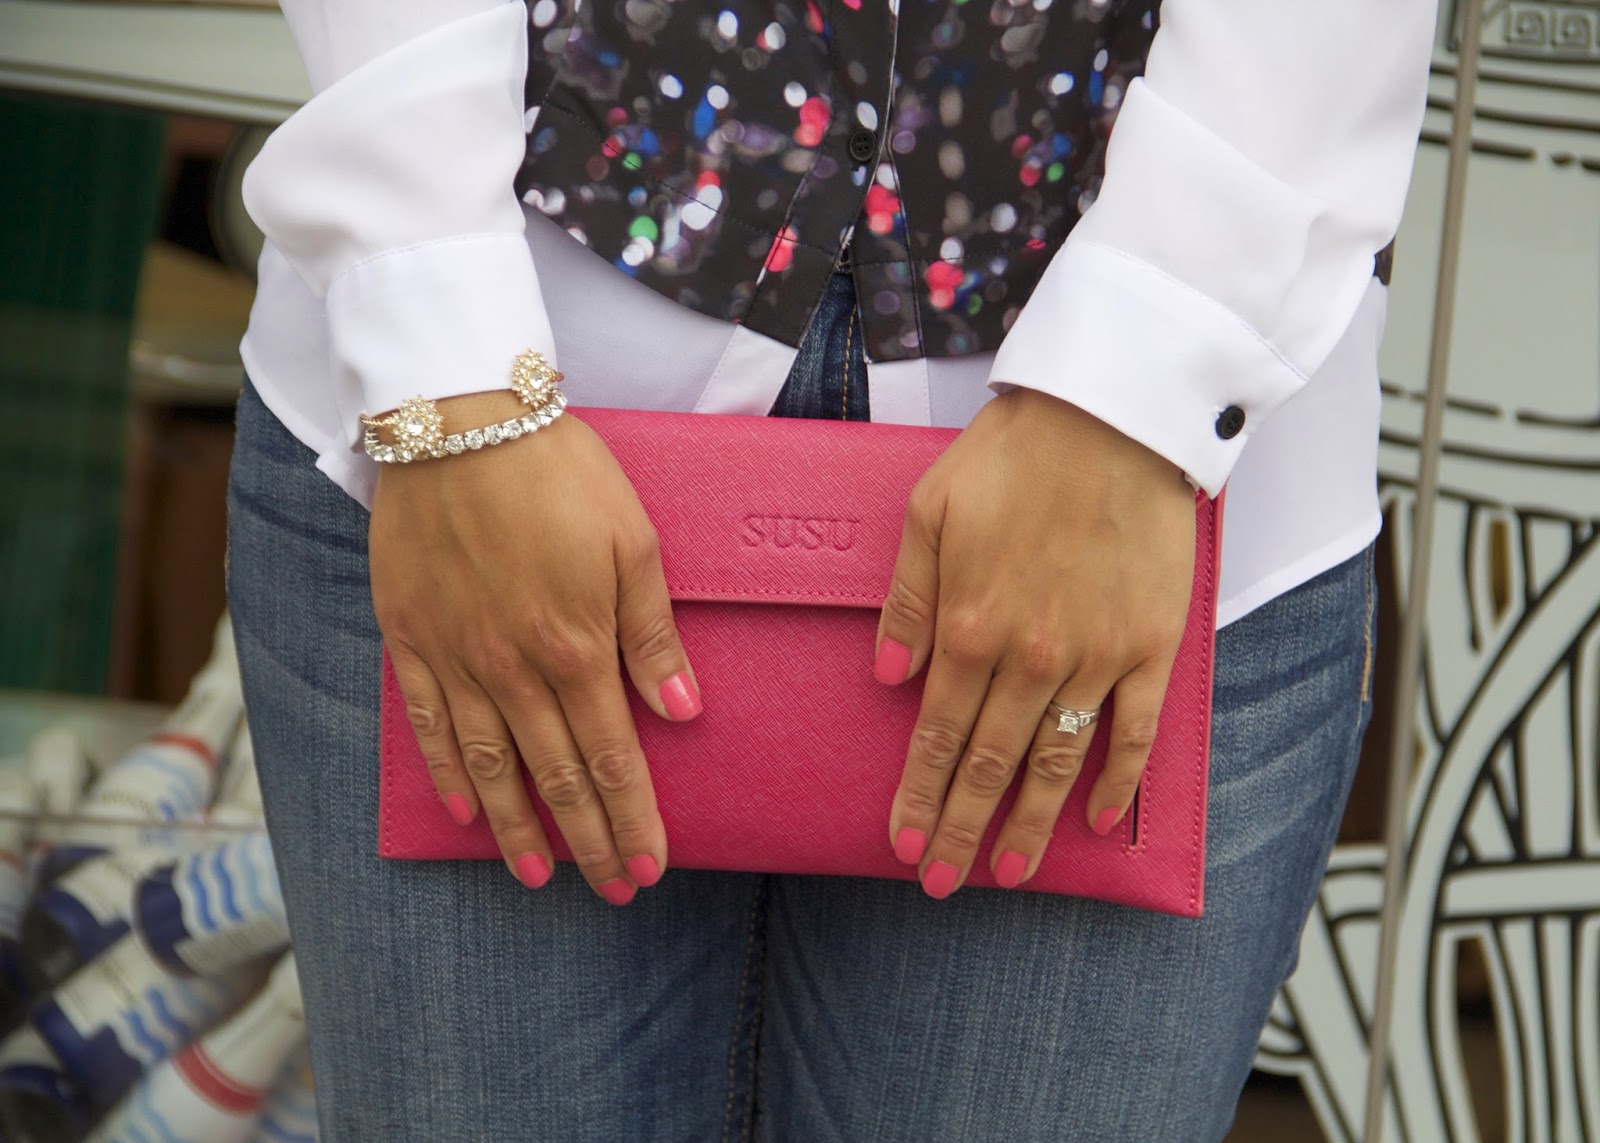 SUSU pink clutch, pink nails in San Diego, Charming Charlie sparkly bracelets